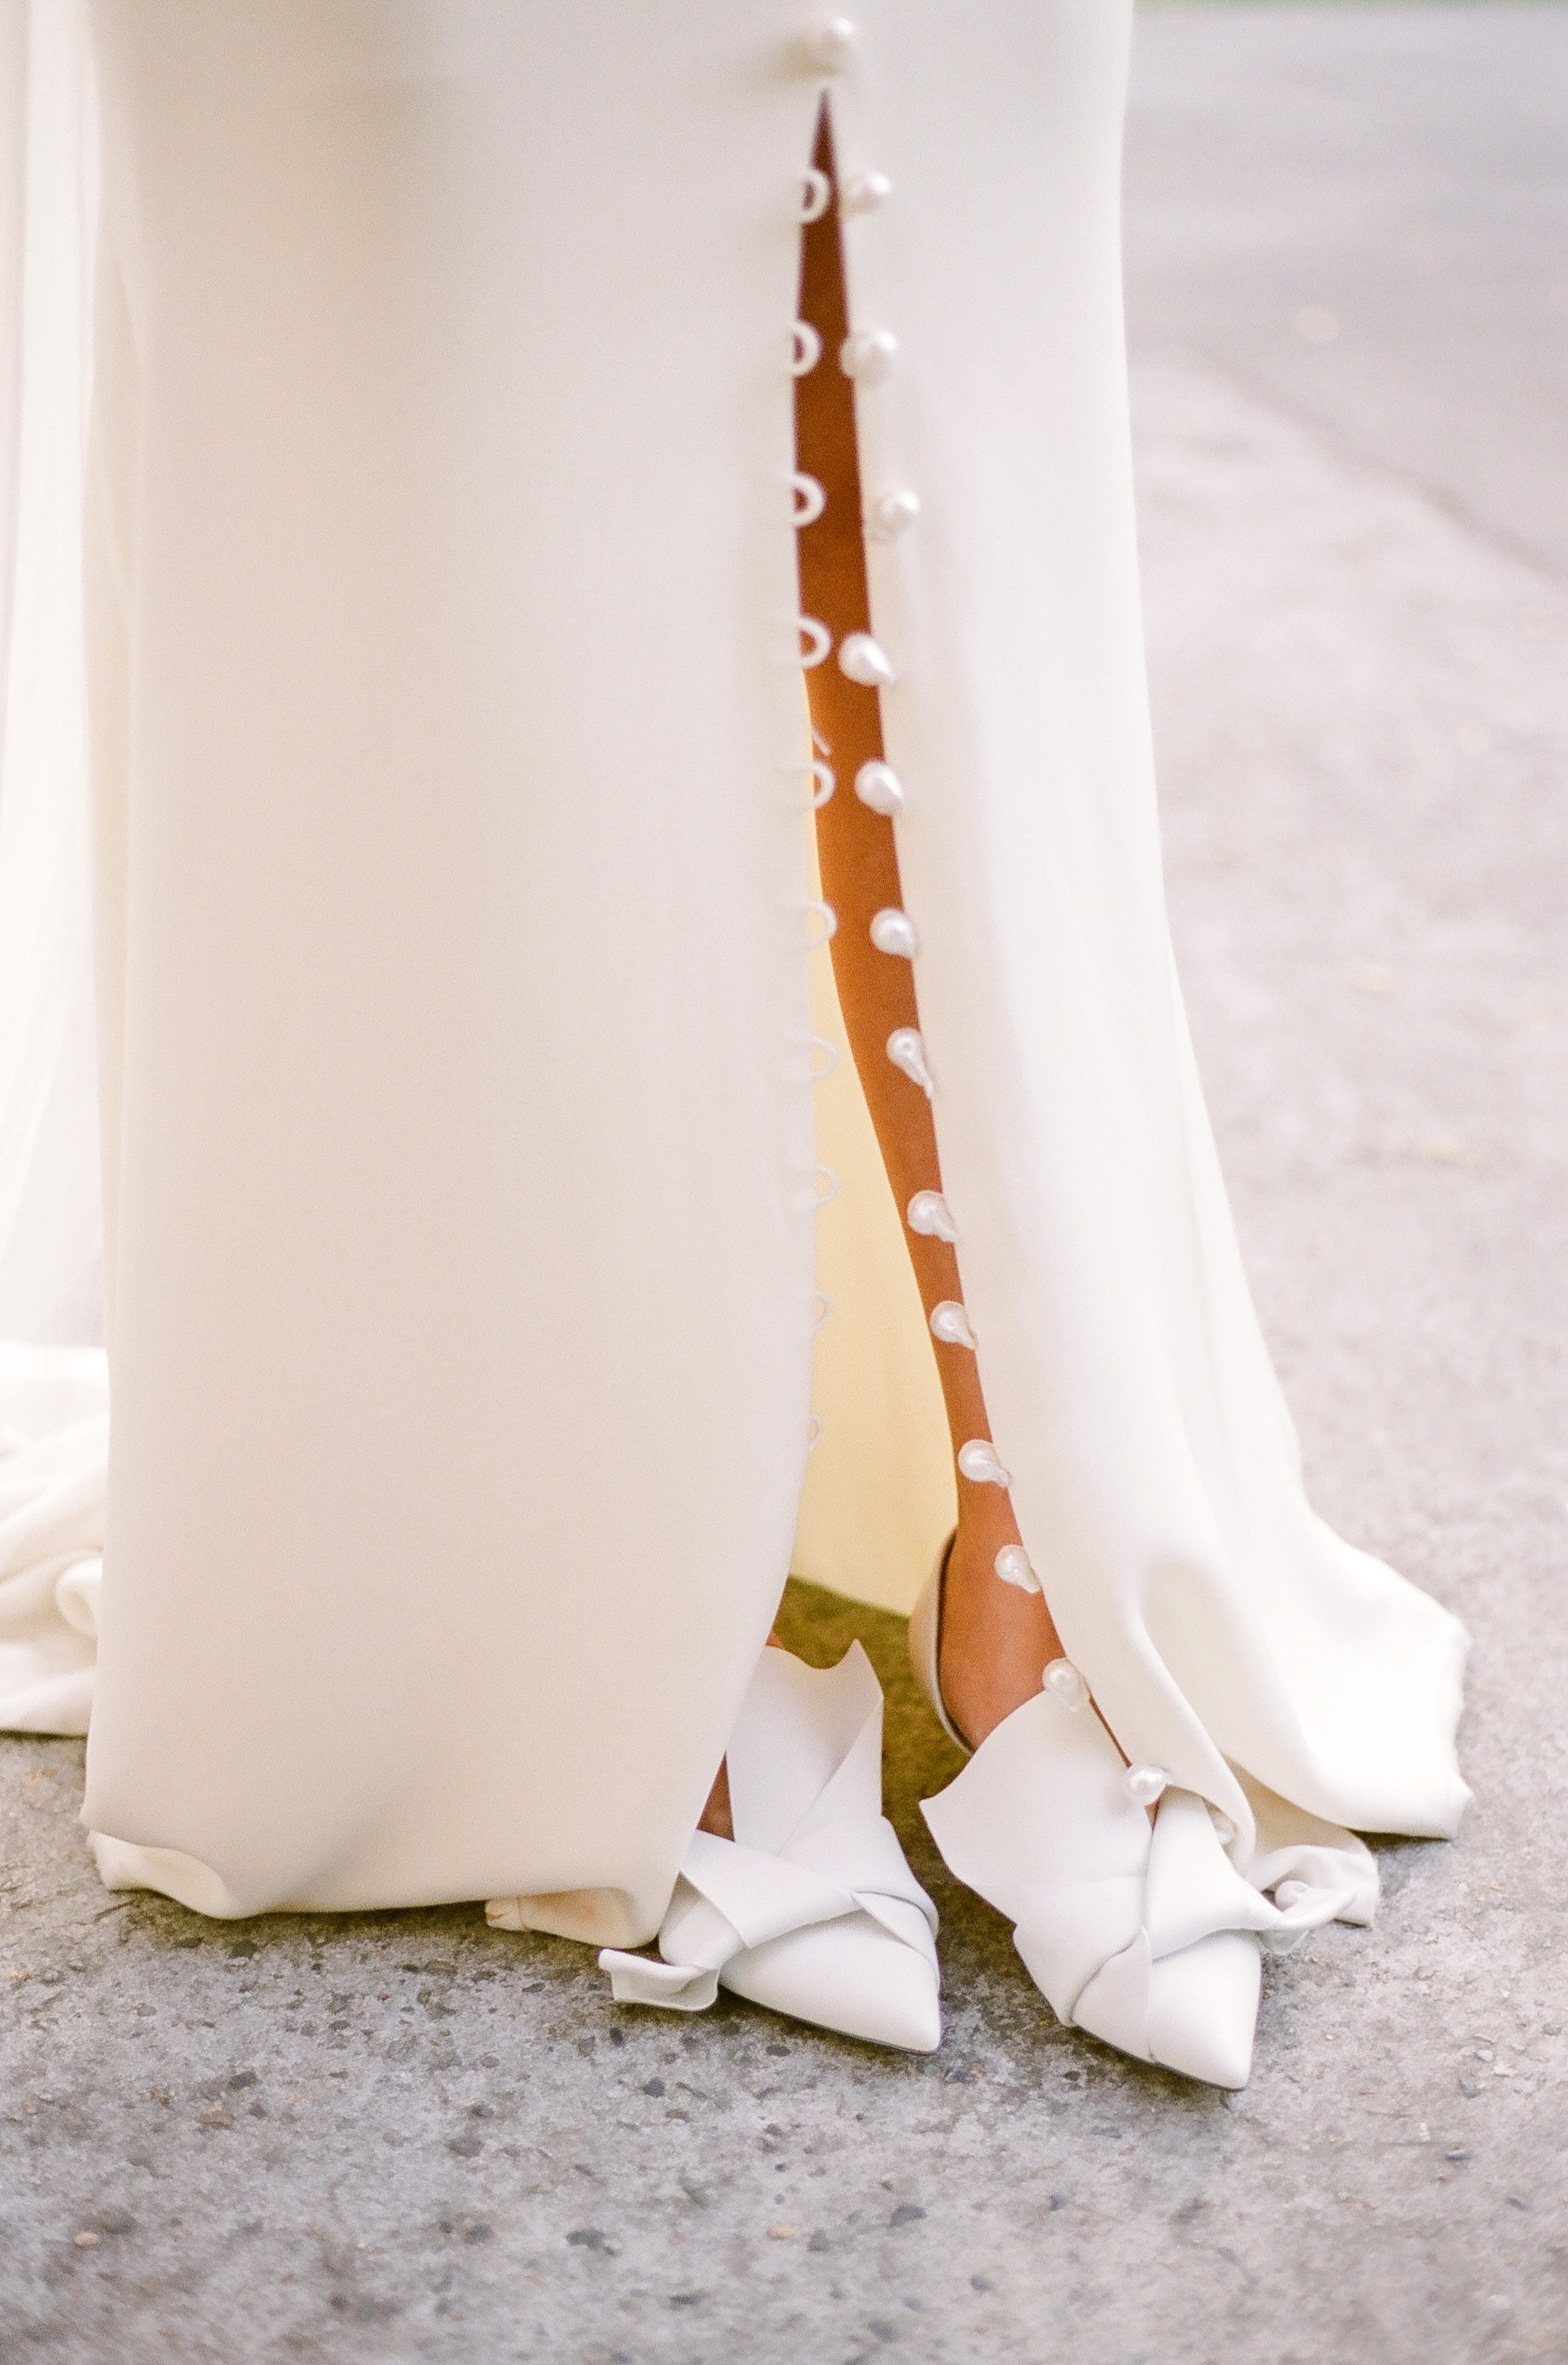 evelyn sam wedding dress details and shoes